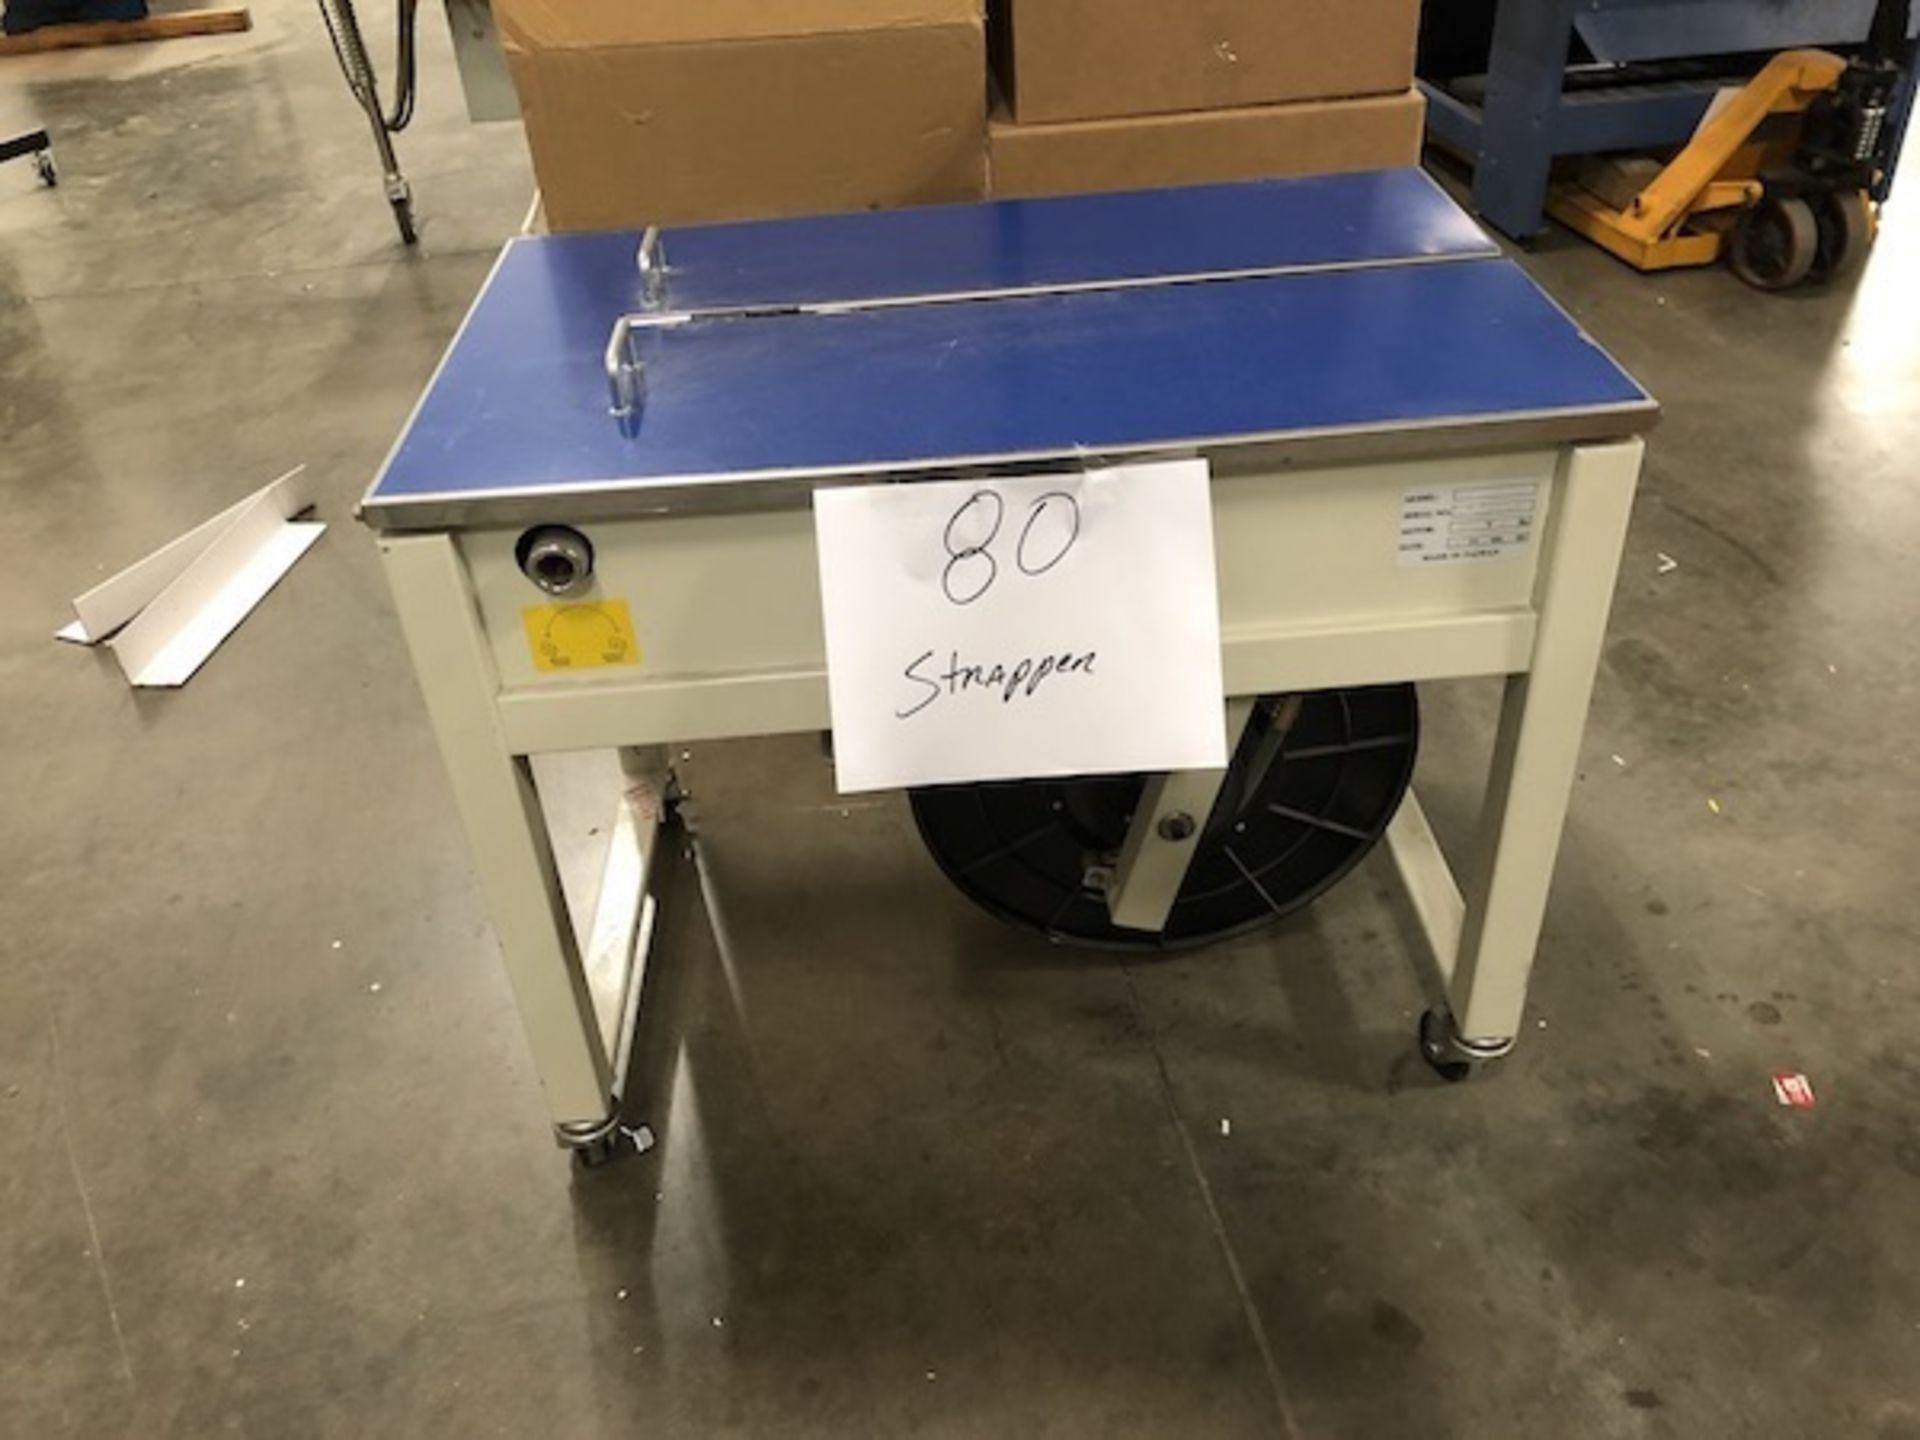 Lot 80 - Automated strapper Model 91 SN 1040120001 Year 2015